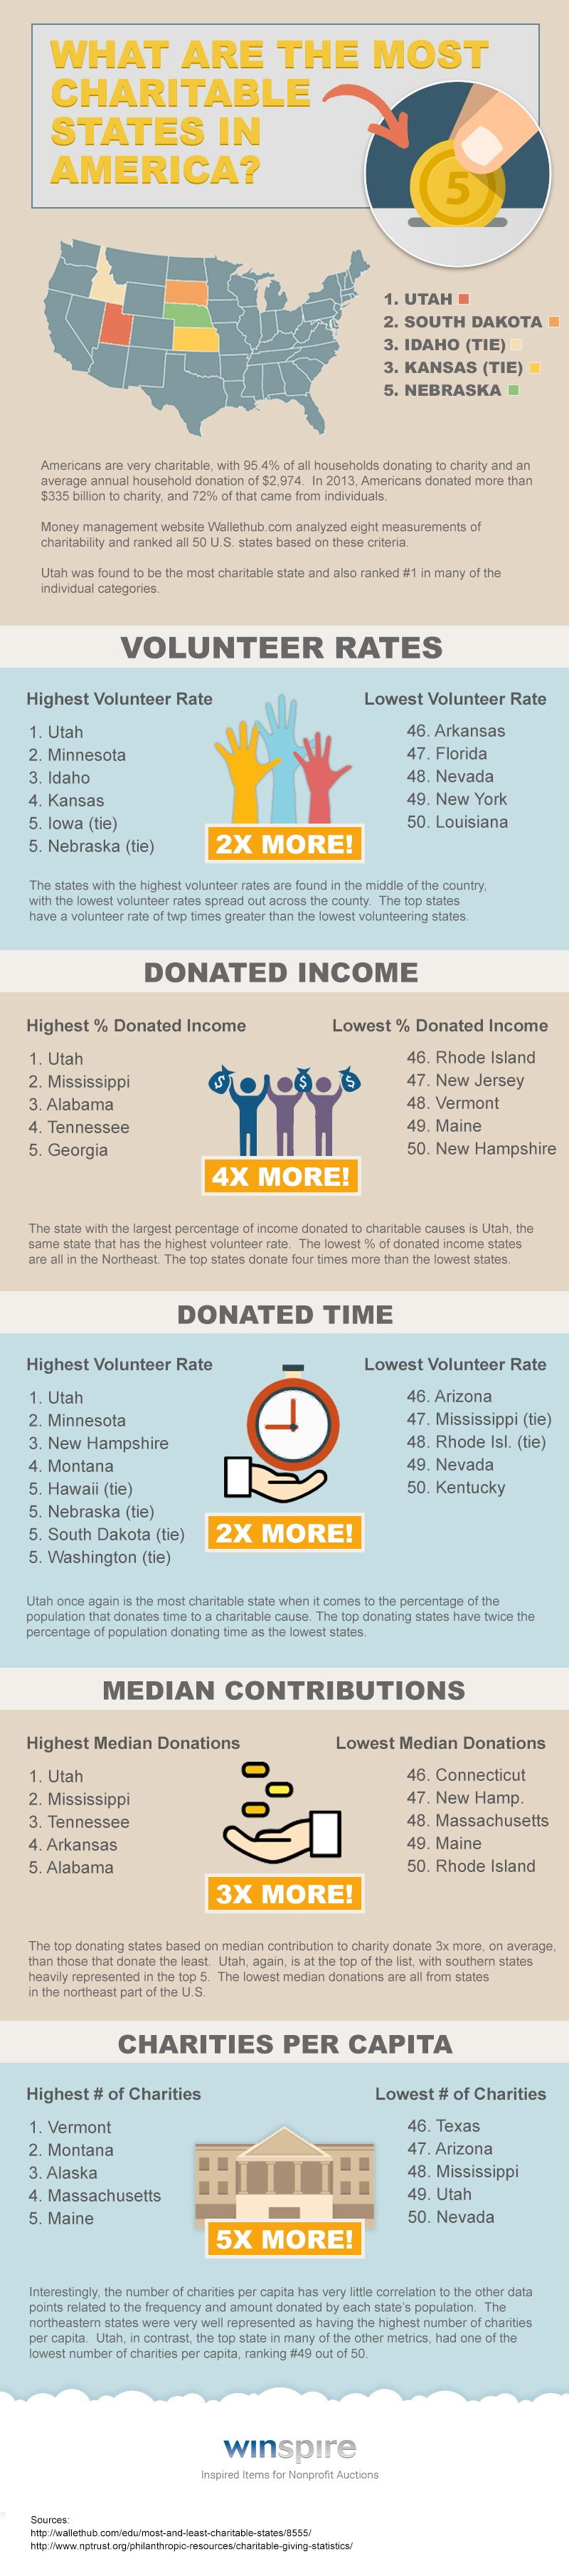 winspire-most-charitable-states-INFOGRAPHIC.jpg